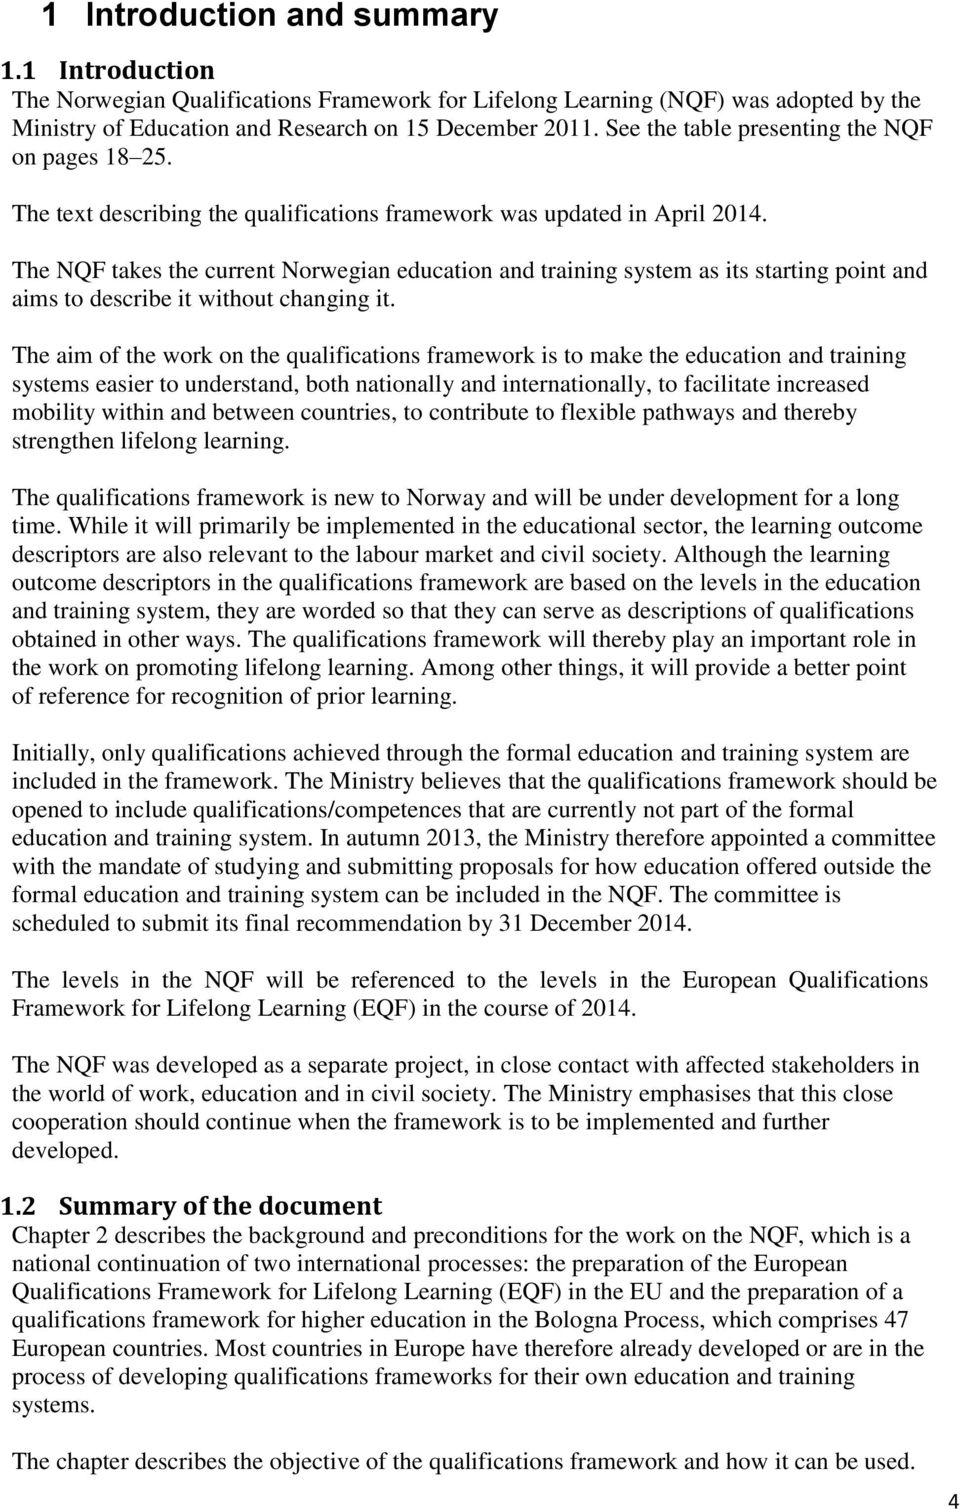 The NQF takes the current Norwegian education and training system as its starting point and aims to describe it without changing it.